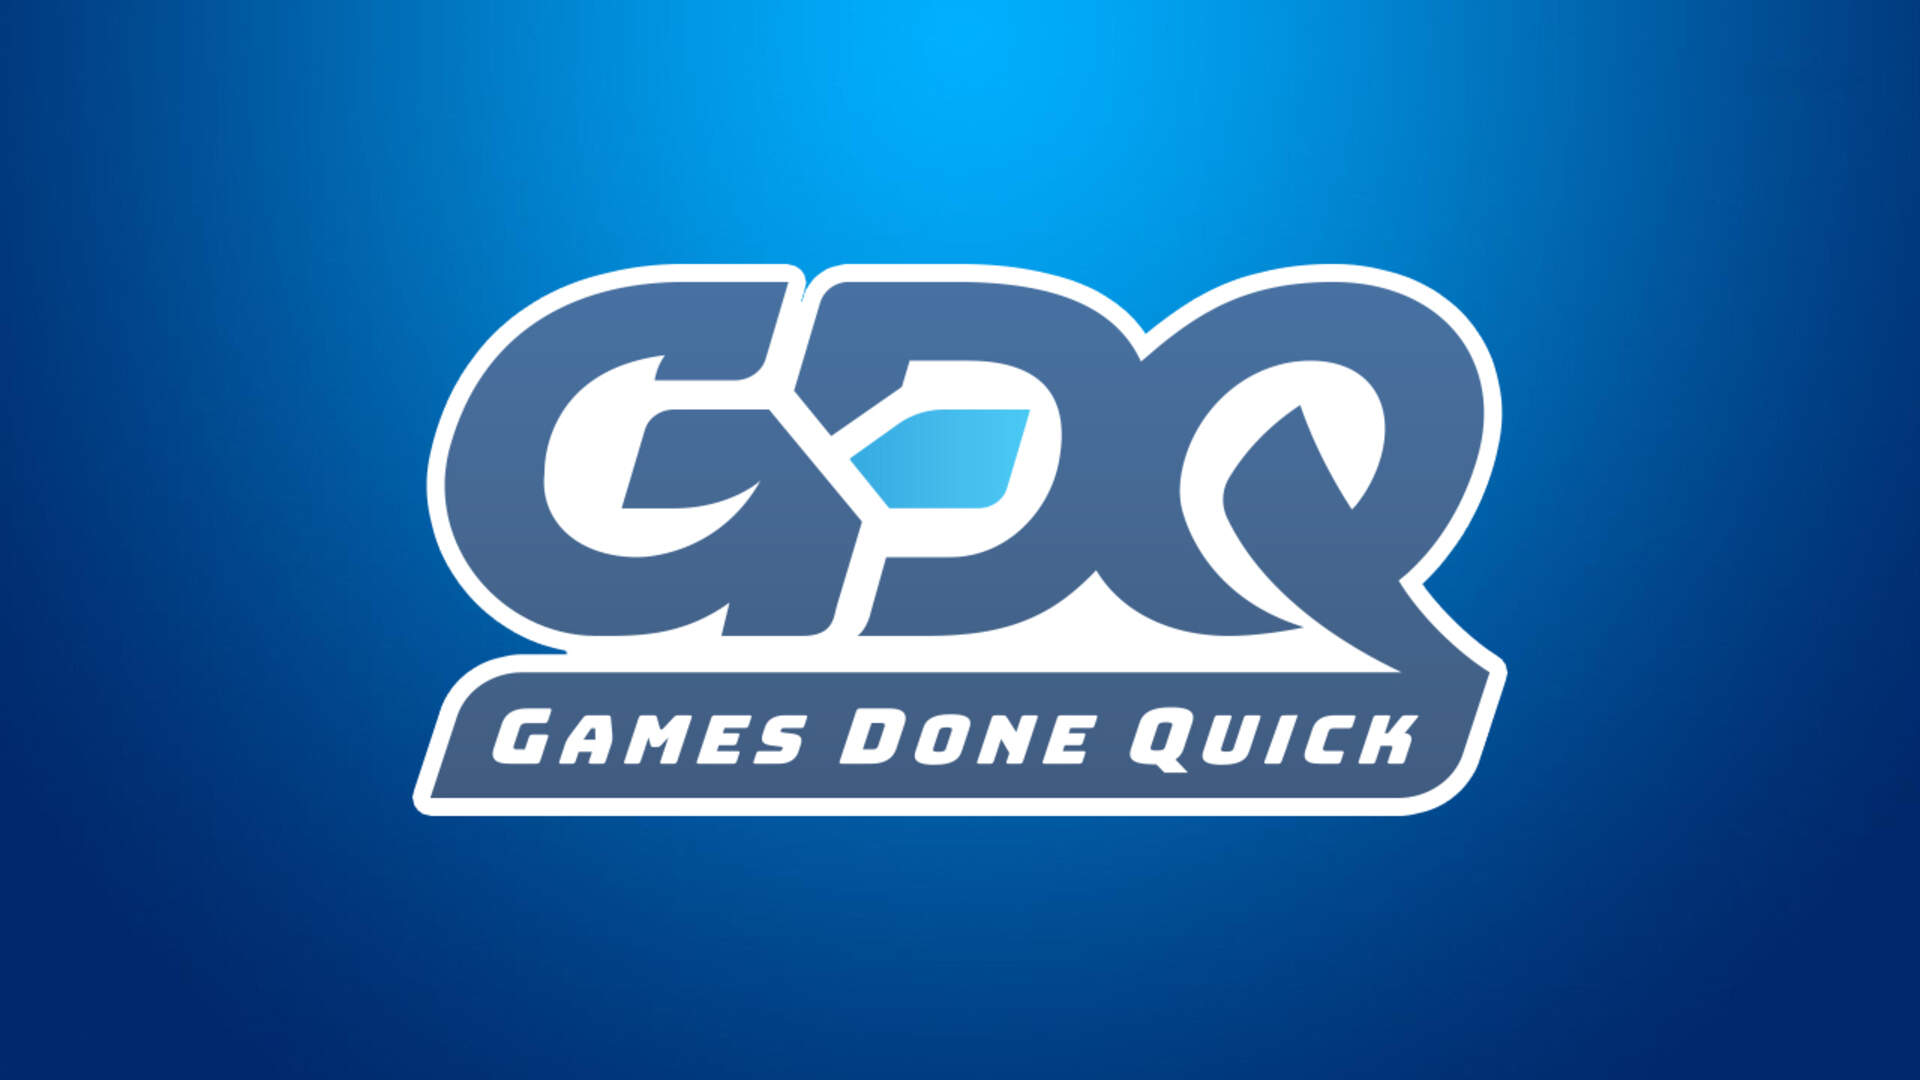 Summer Games Done Quick Goes All-Online Due to COVID-19